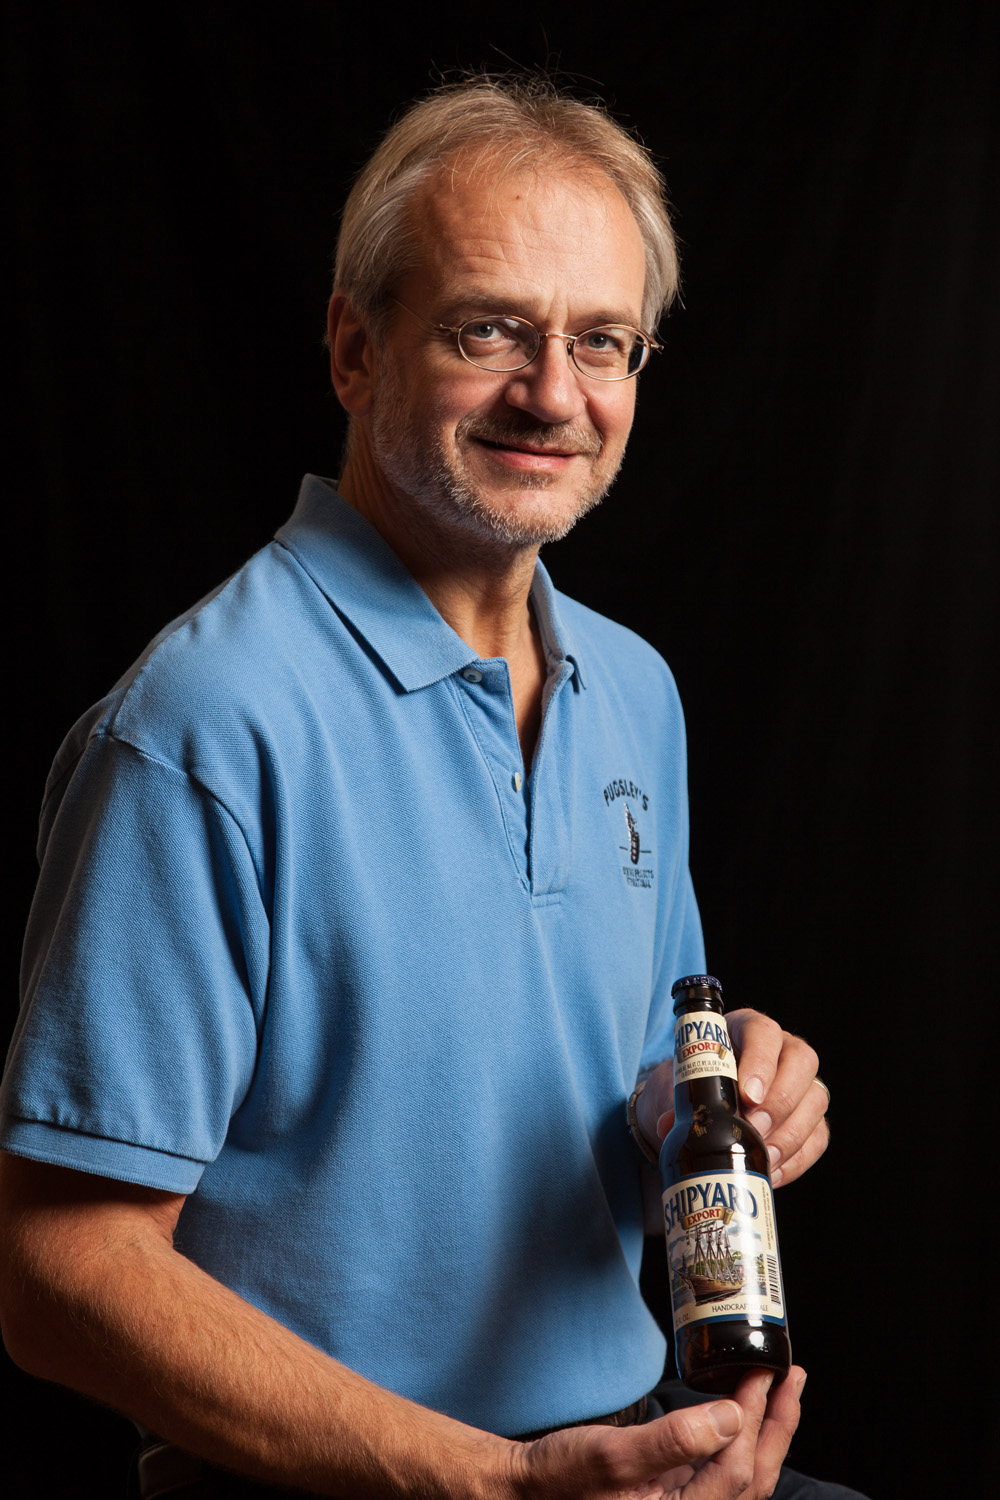 Alan Pugsley, Master Brewer Pugsley Brewing Projects International Portland, ME Alan formulated Gearys Pale Ale and Shipyard Export.